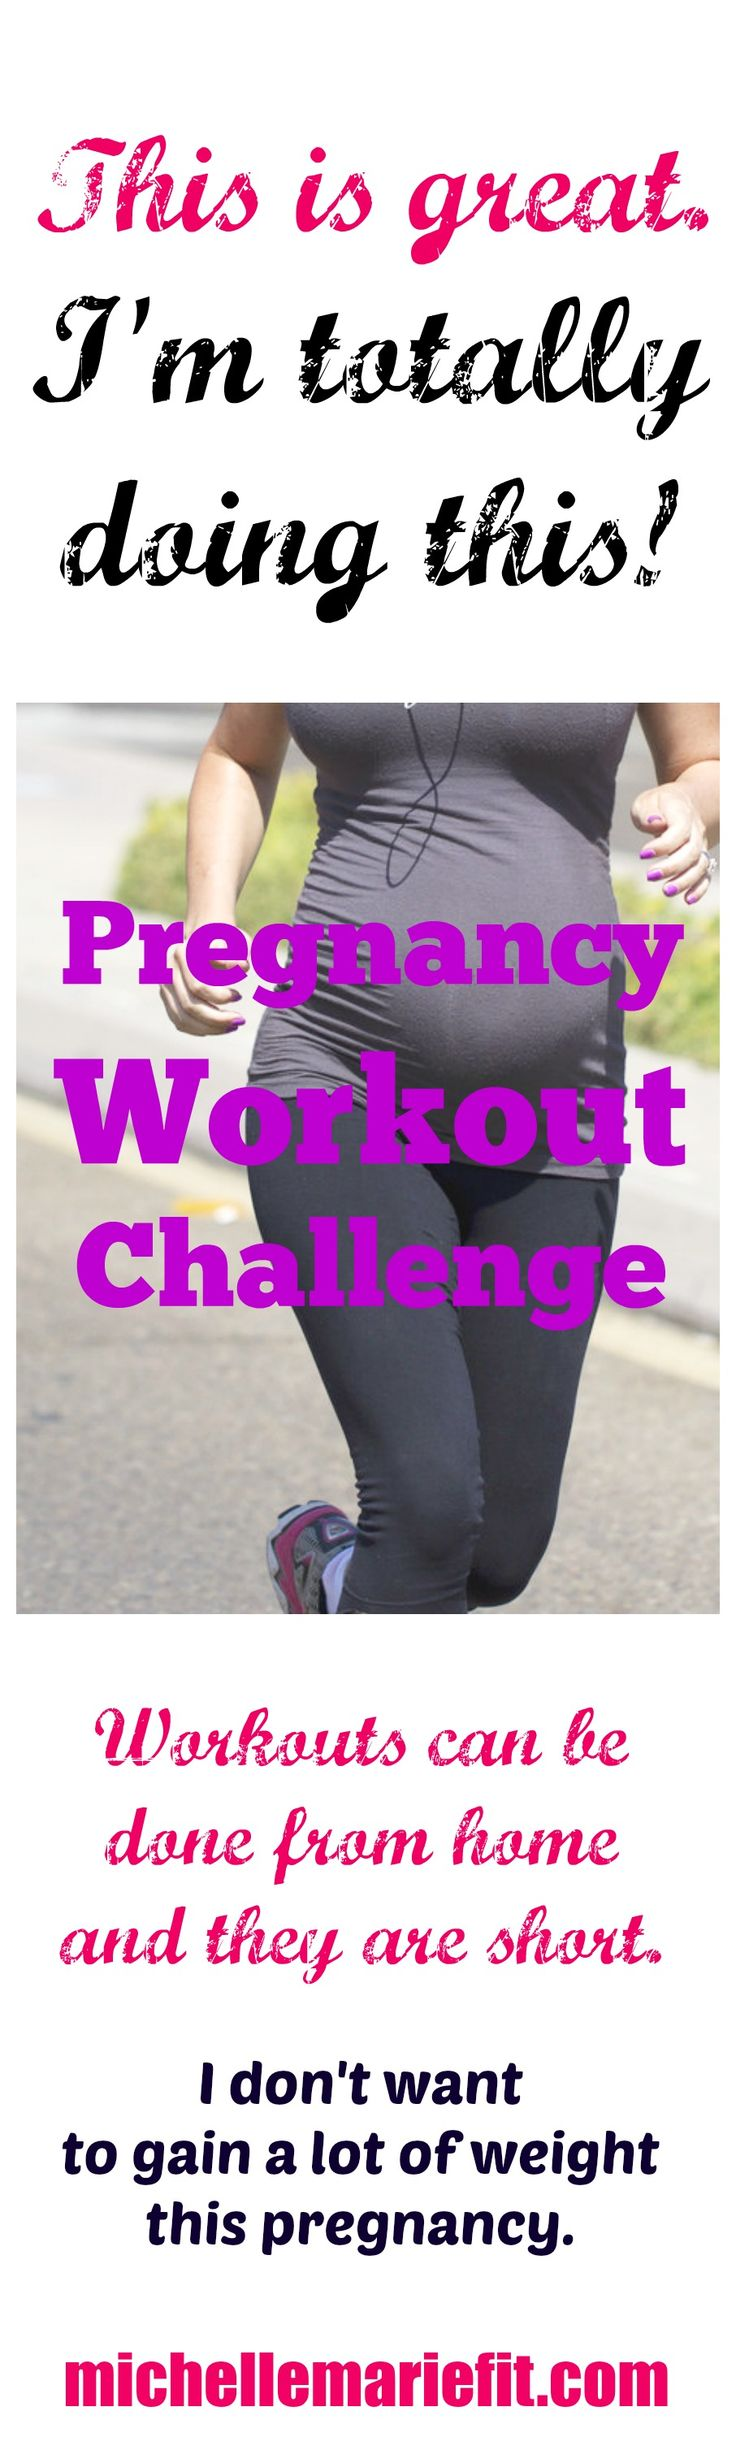 14 Day Jumpstart Pregnancy Workout Challenge Daily workouts and motivation. Pictures and workout videos included  http://michellemariefit.com/pregnancy-workout-challenge-14-day-jumpstart/